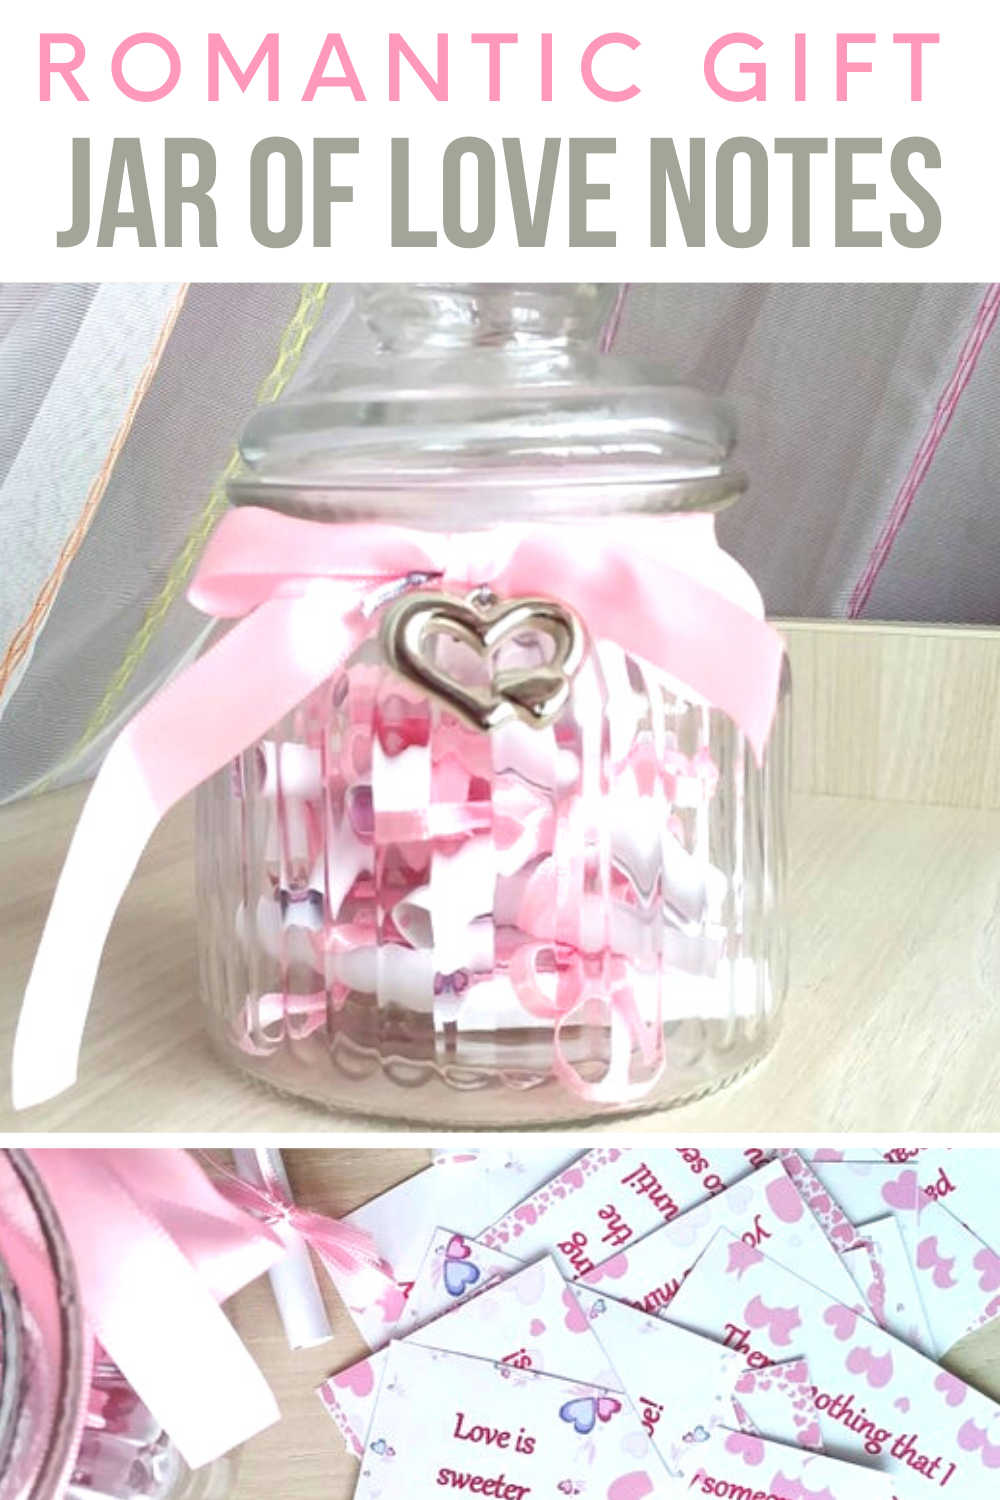 Unique Romantic Gift Ideas for that Special Someone